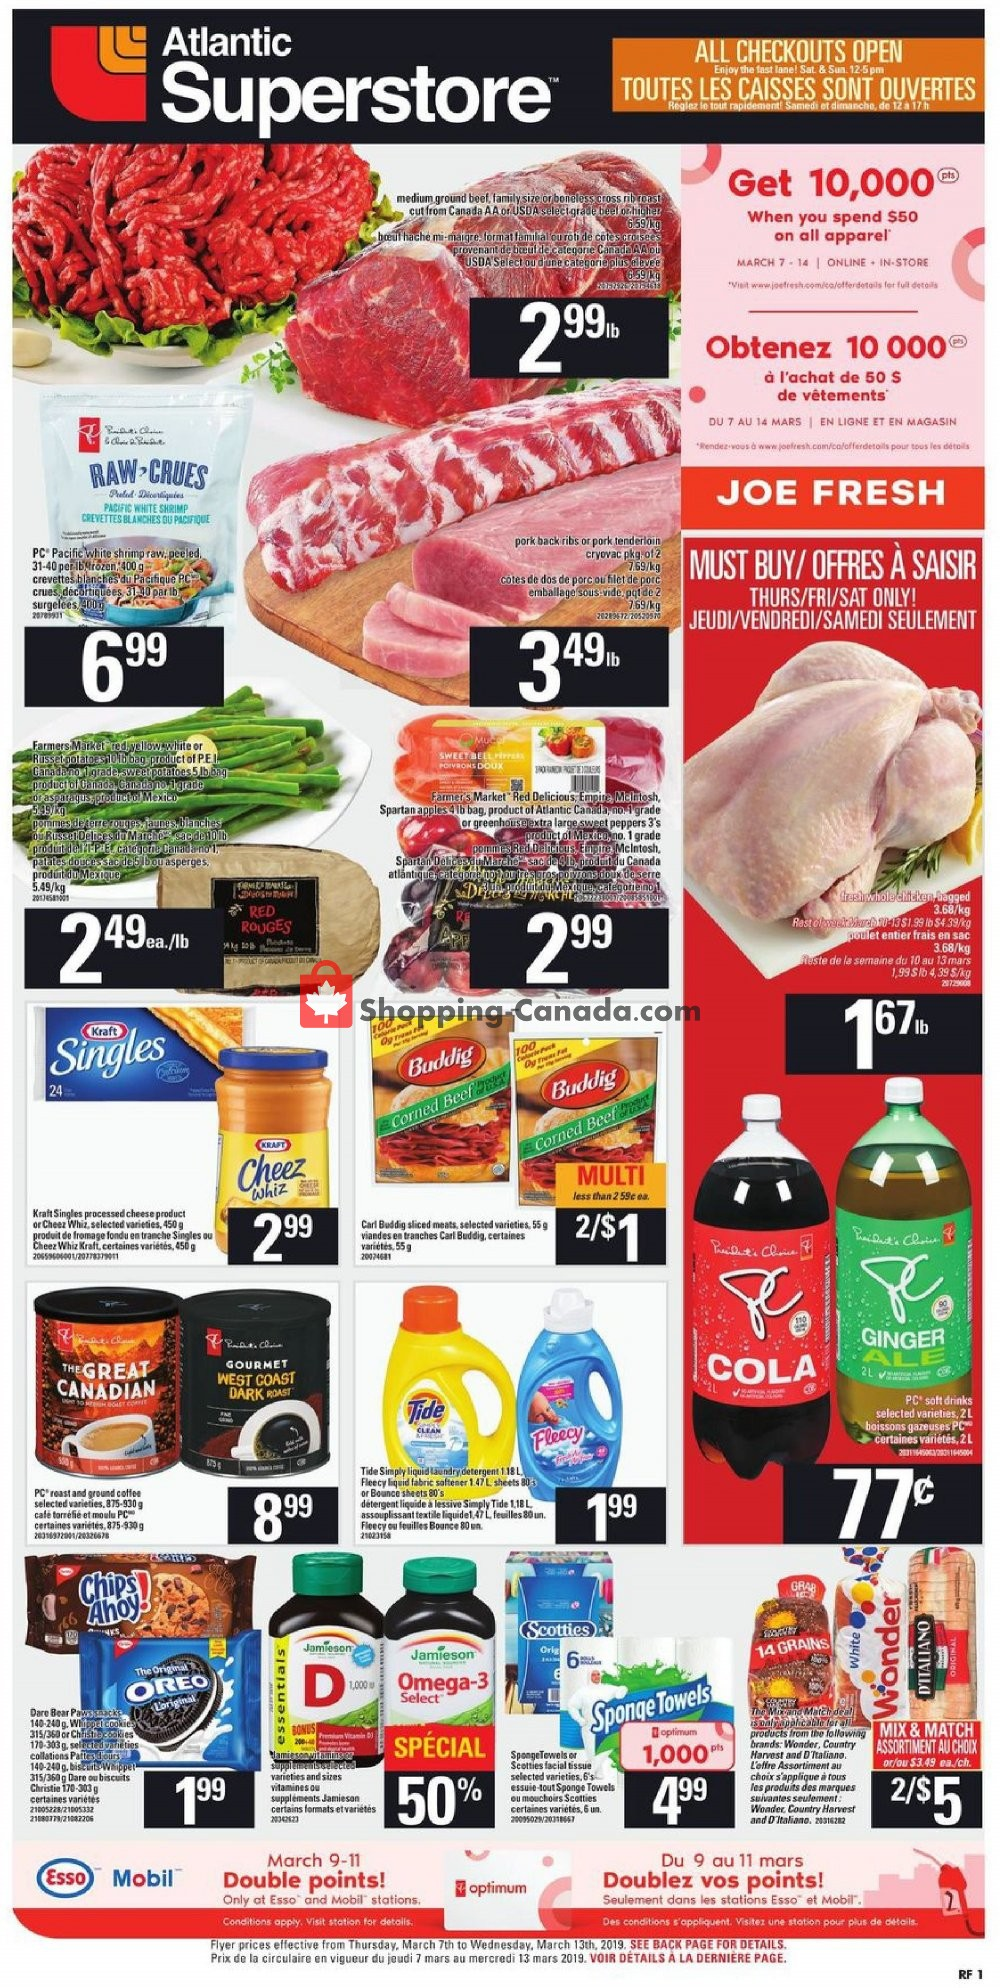 Flyer Atlantic Superstore Canada - from Thursday March 7, 2019 to Wednesday March 13, 2019